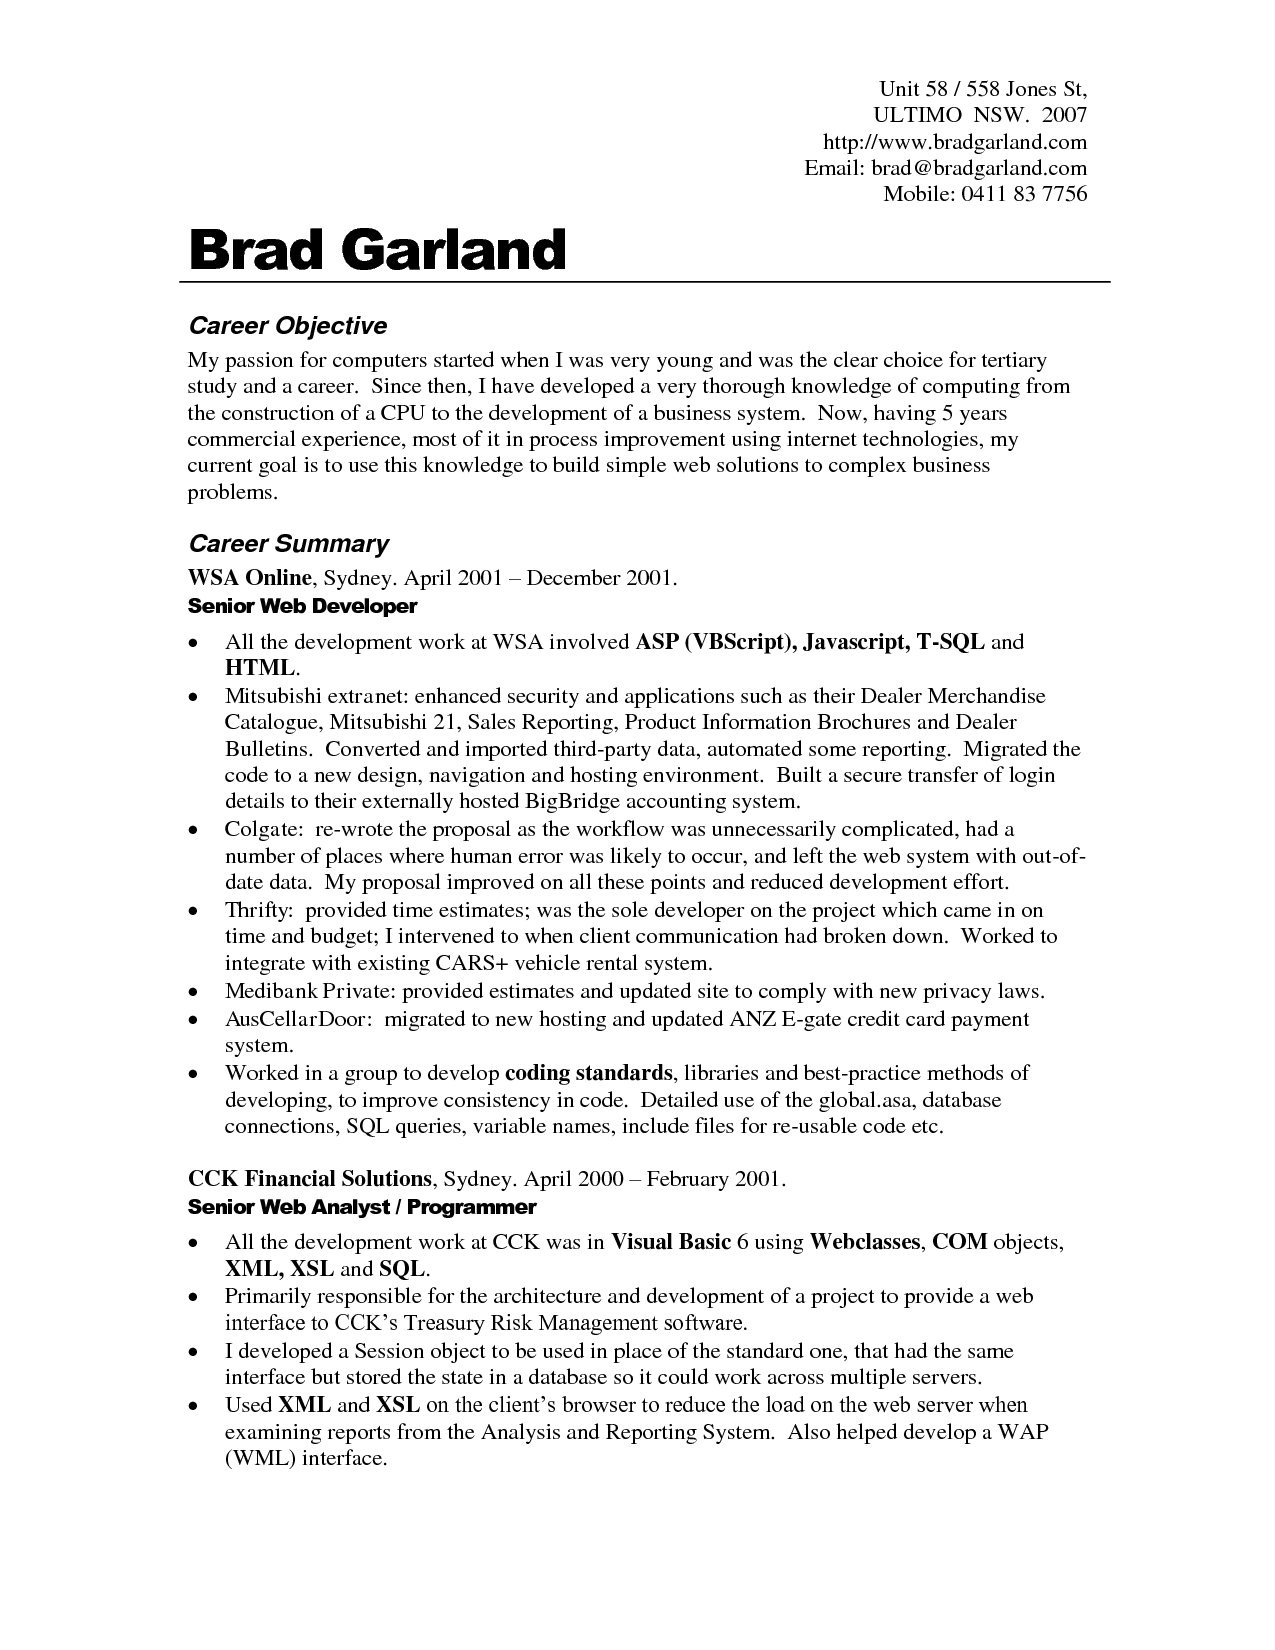 Resume Objectives Examples Best TemplateResume Objective Examples ...